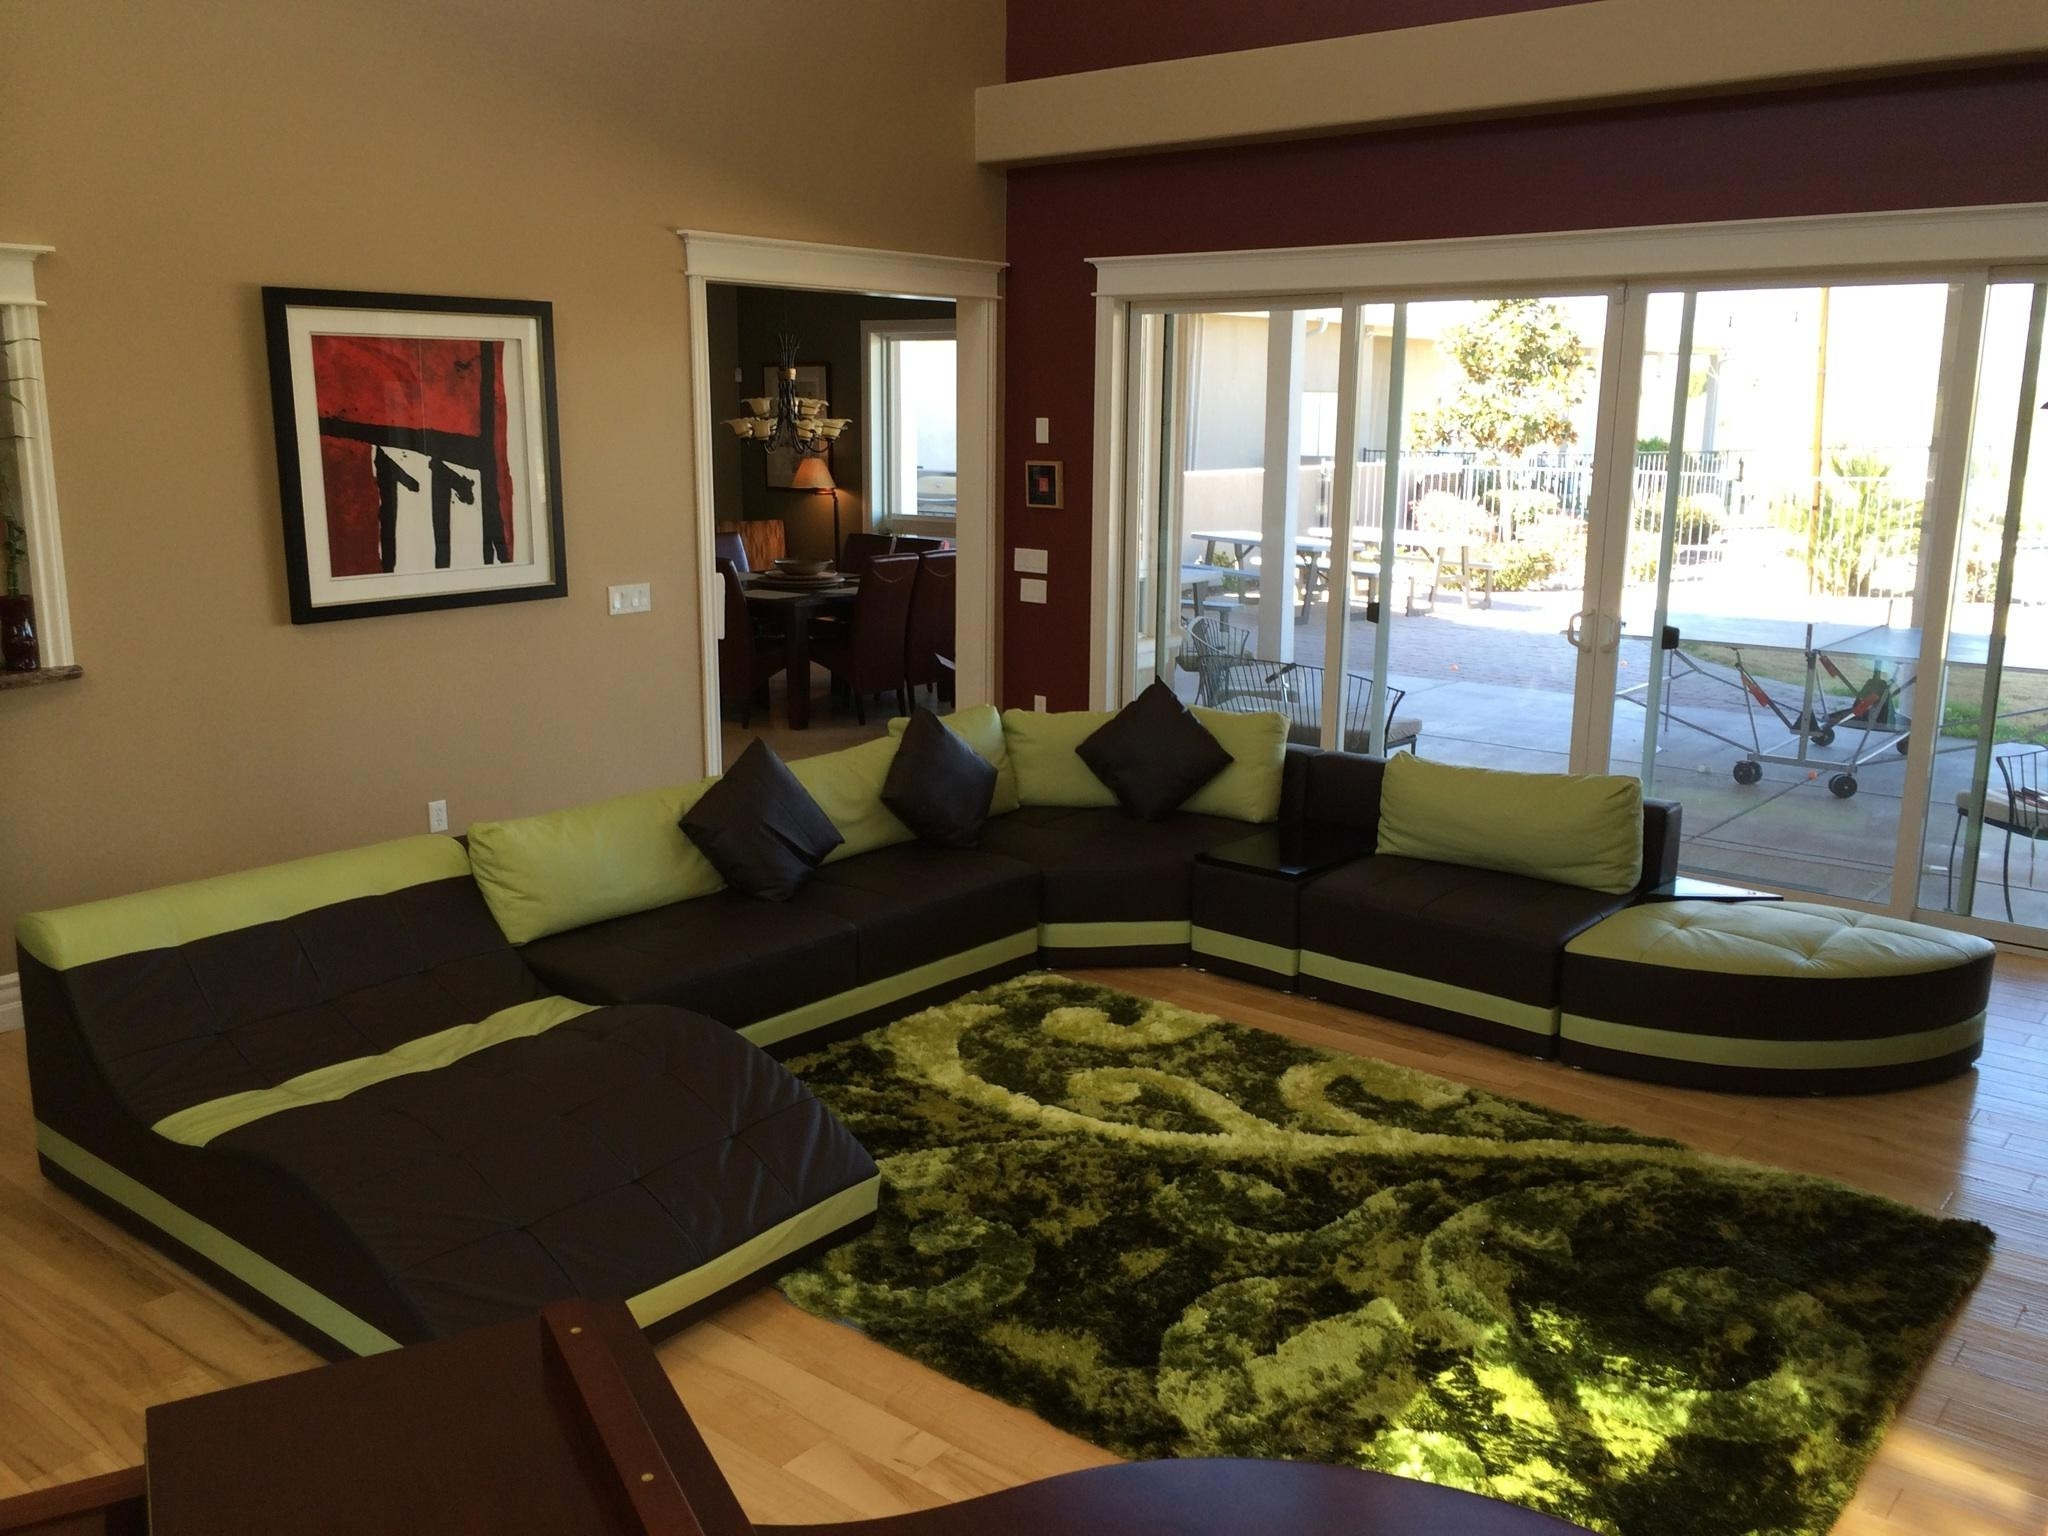 Green And Black Living Room Decor Flaunting Extra Large U Shaped within Extra Large U Shaped Sectionals (Image 10 of 15)